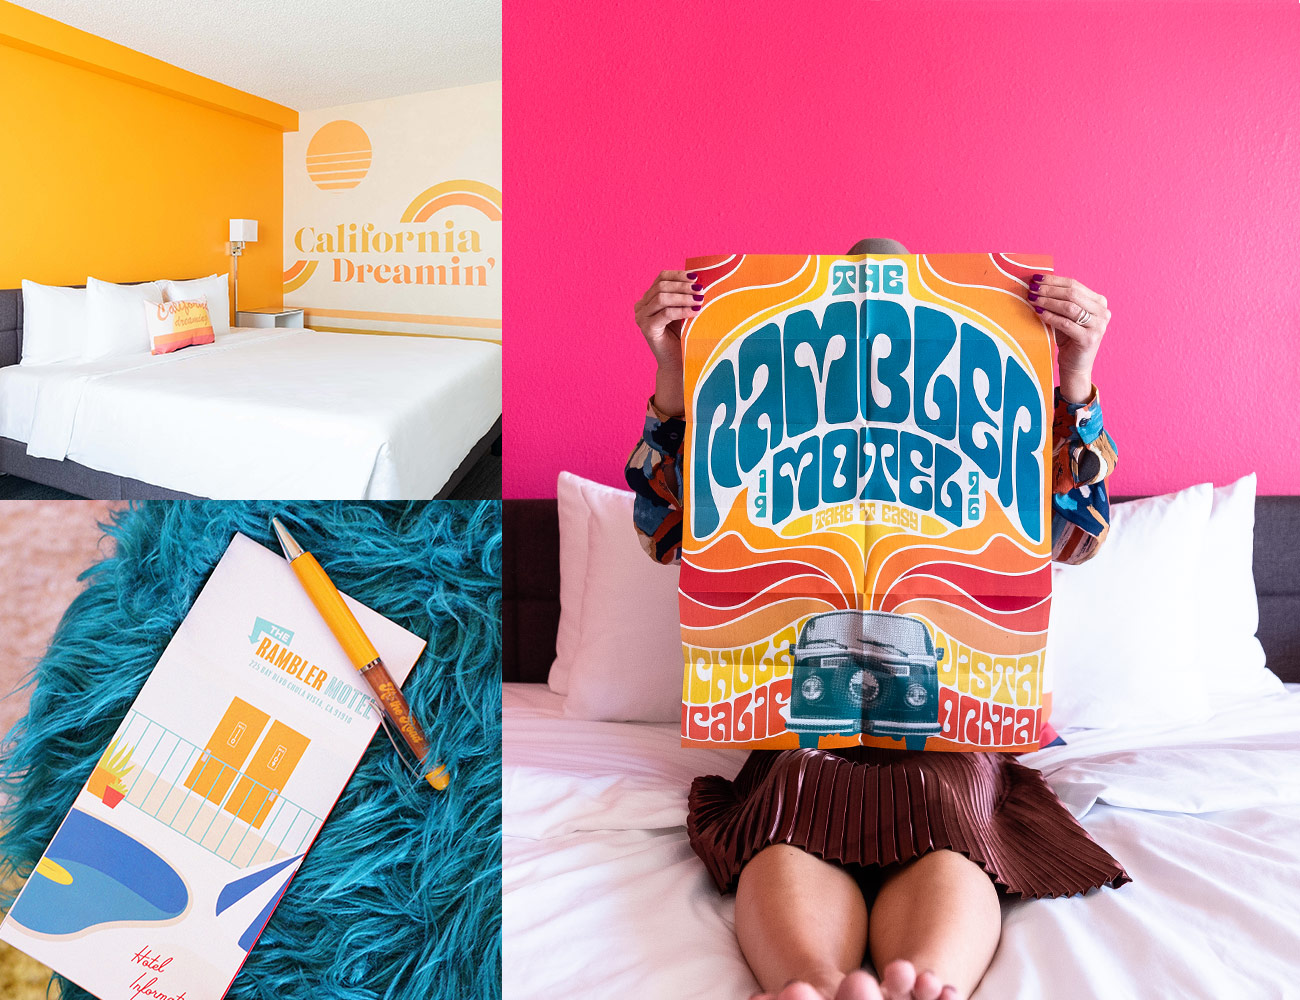 Rambler guest room with California Dreaming wall art